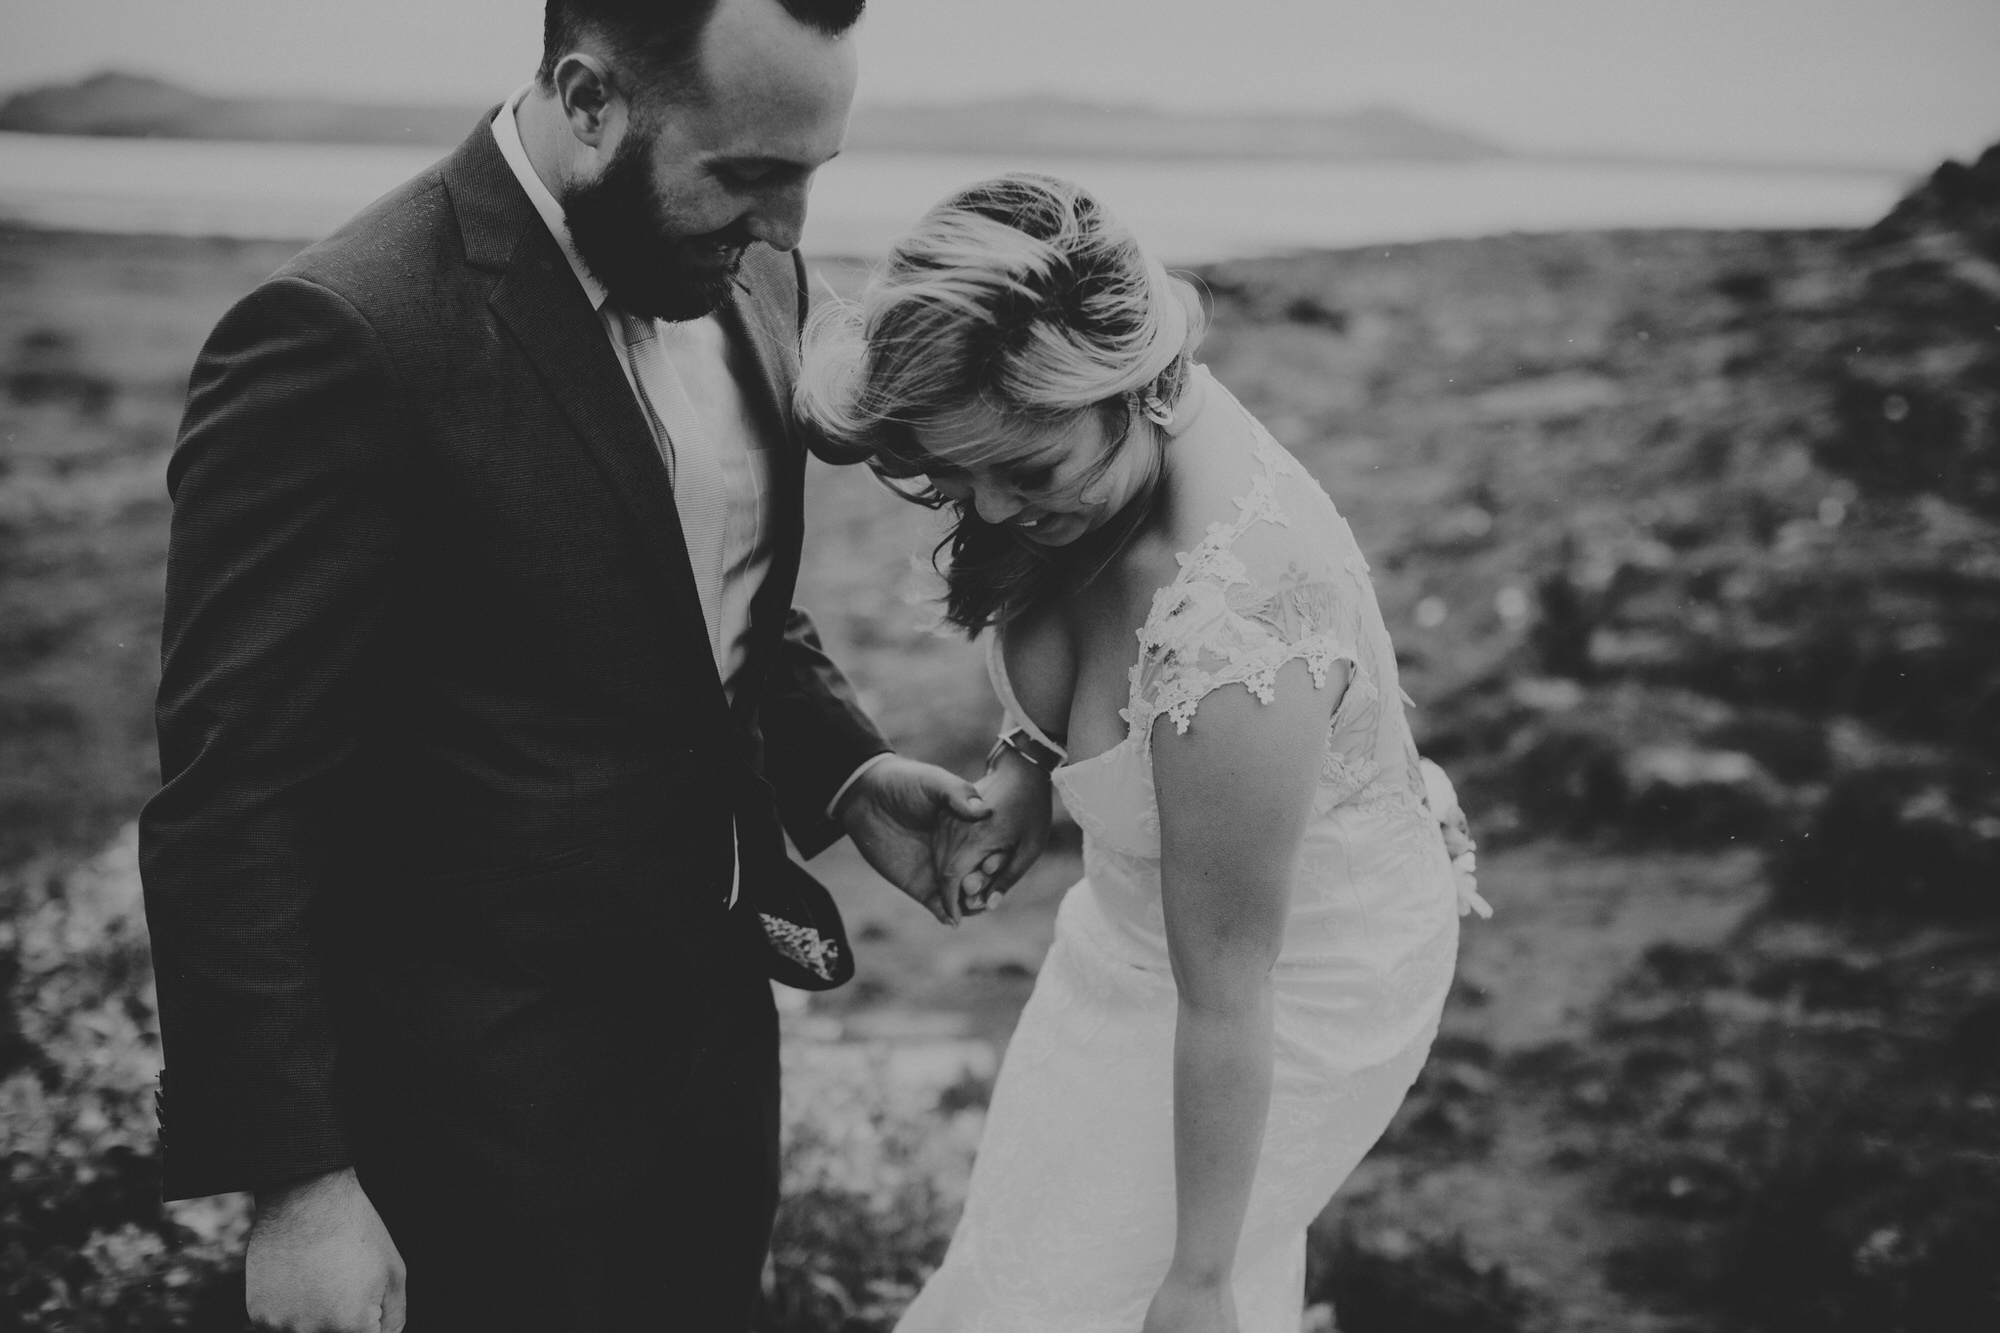 elopement photographer iceland ©Anne-claire Brun